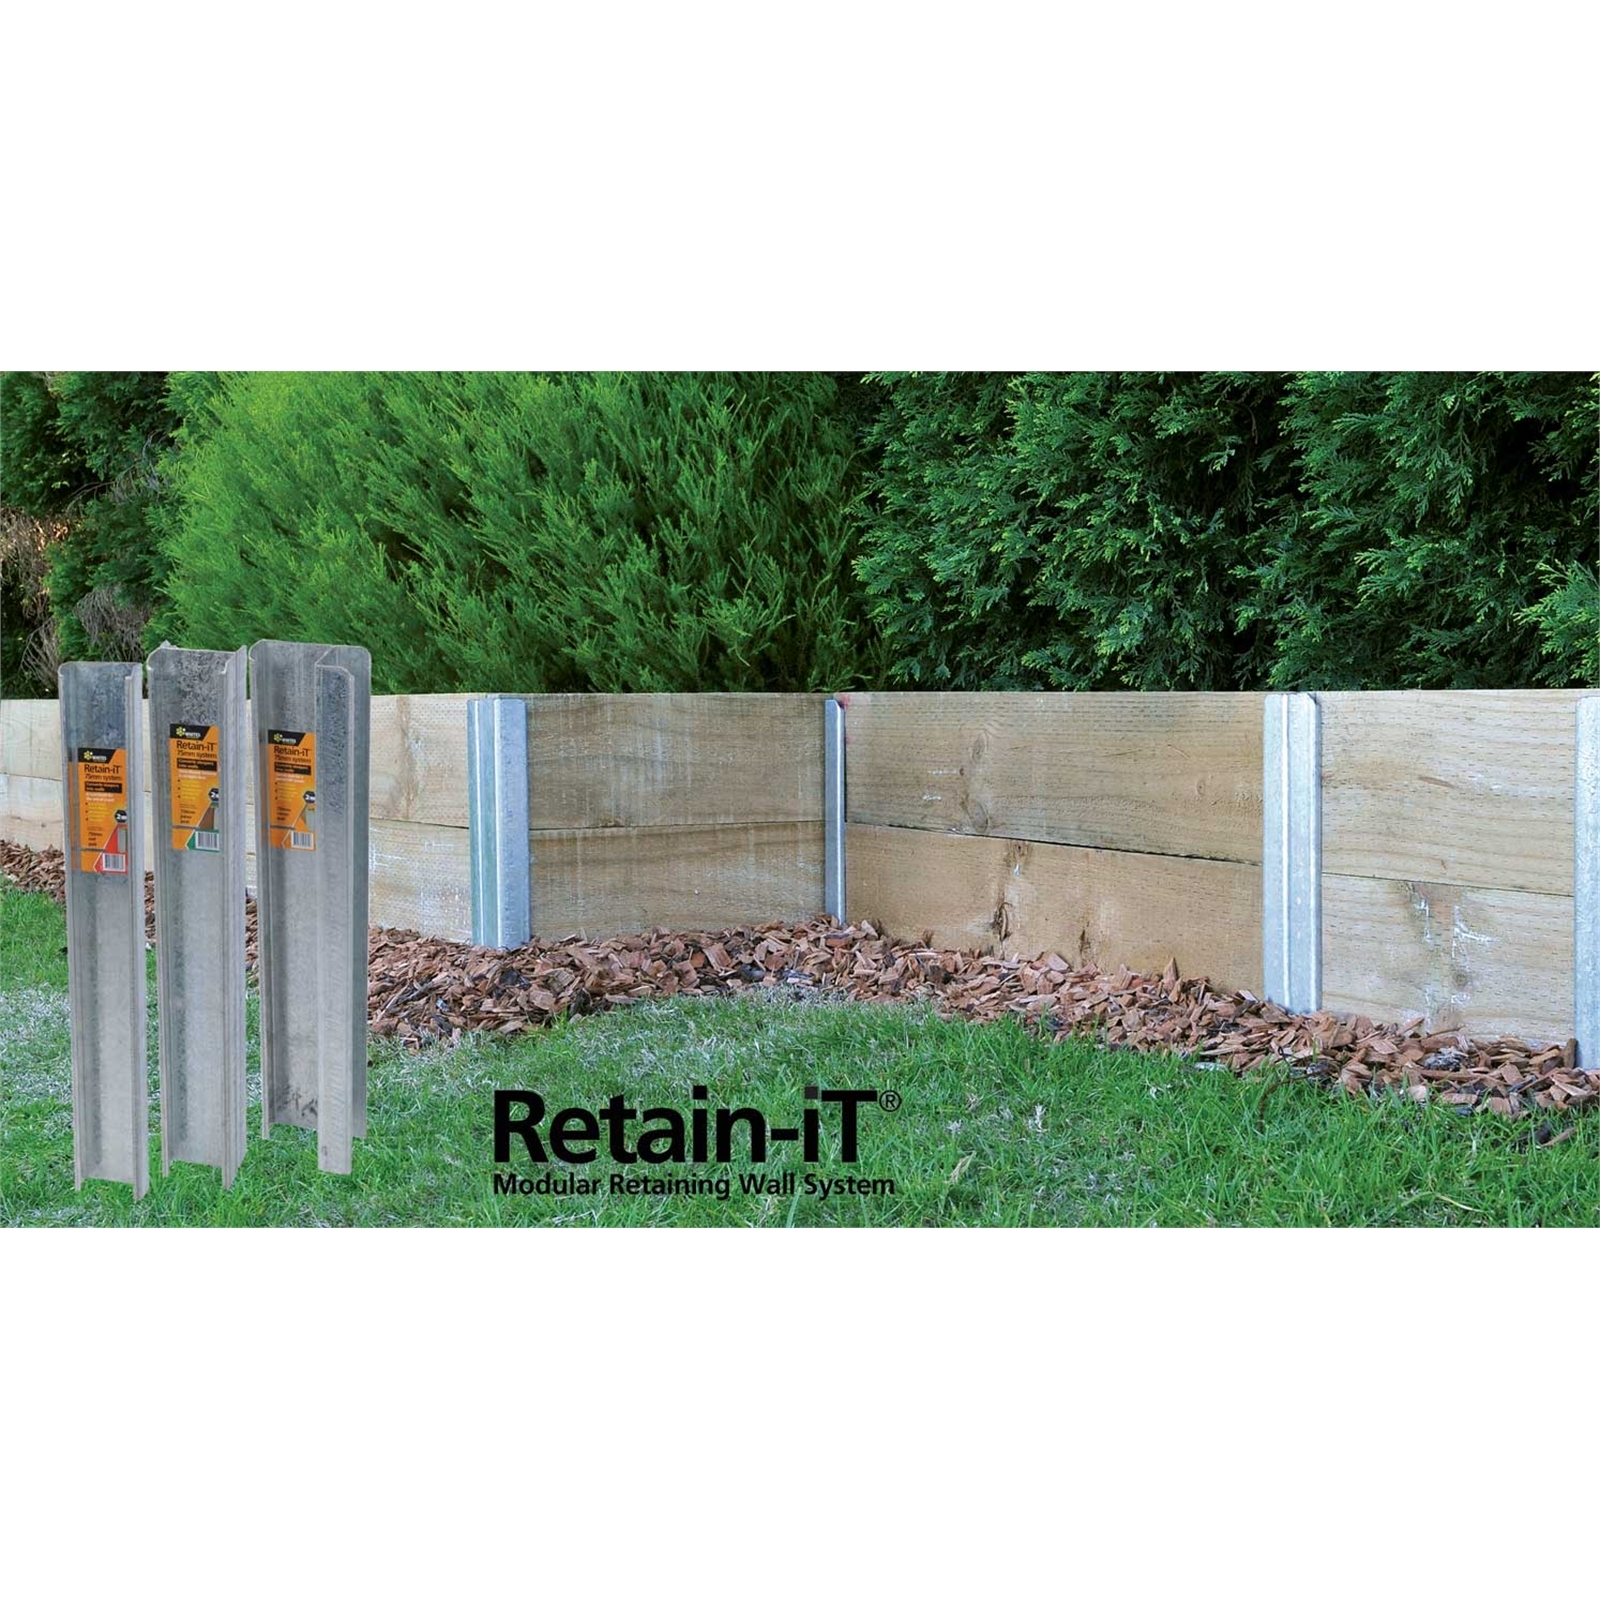 Whites Outdoor 750 x 75mm Retain-iT Joiner Post